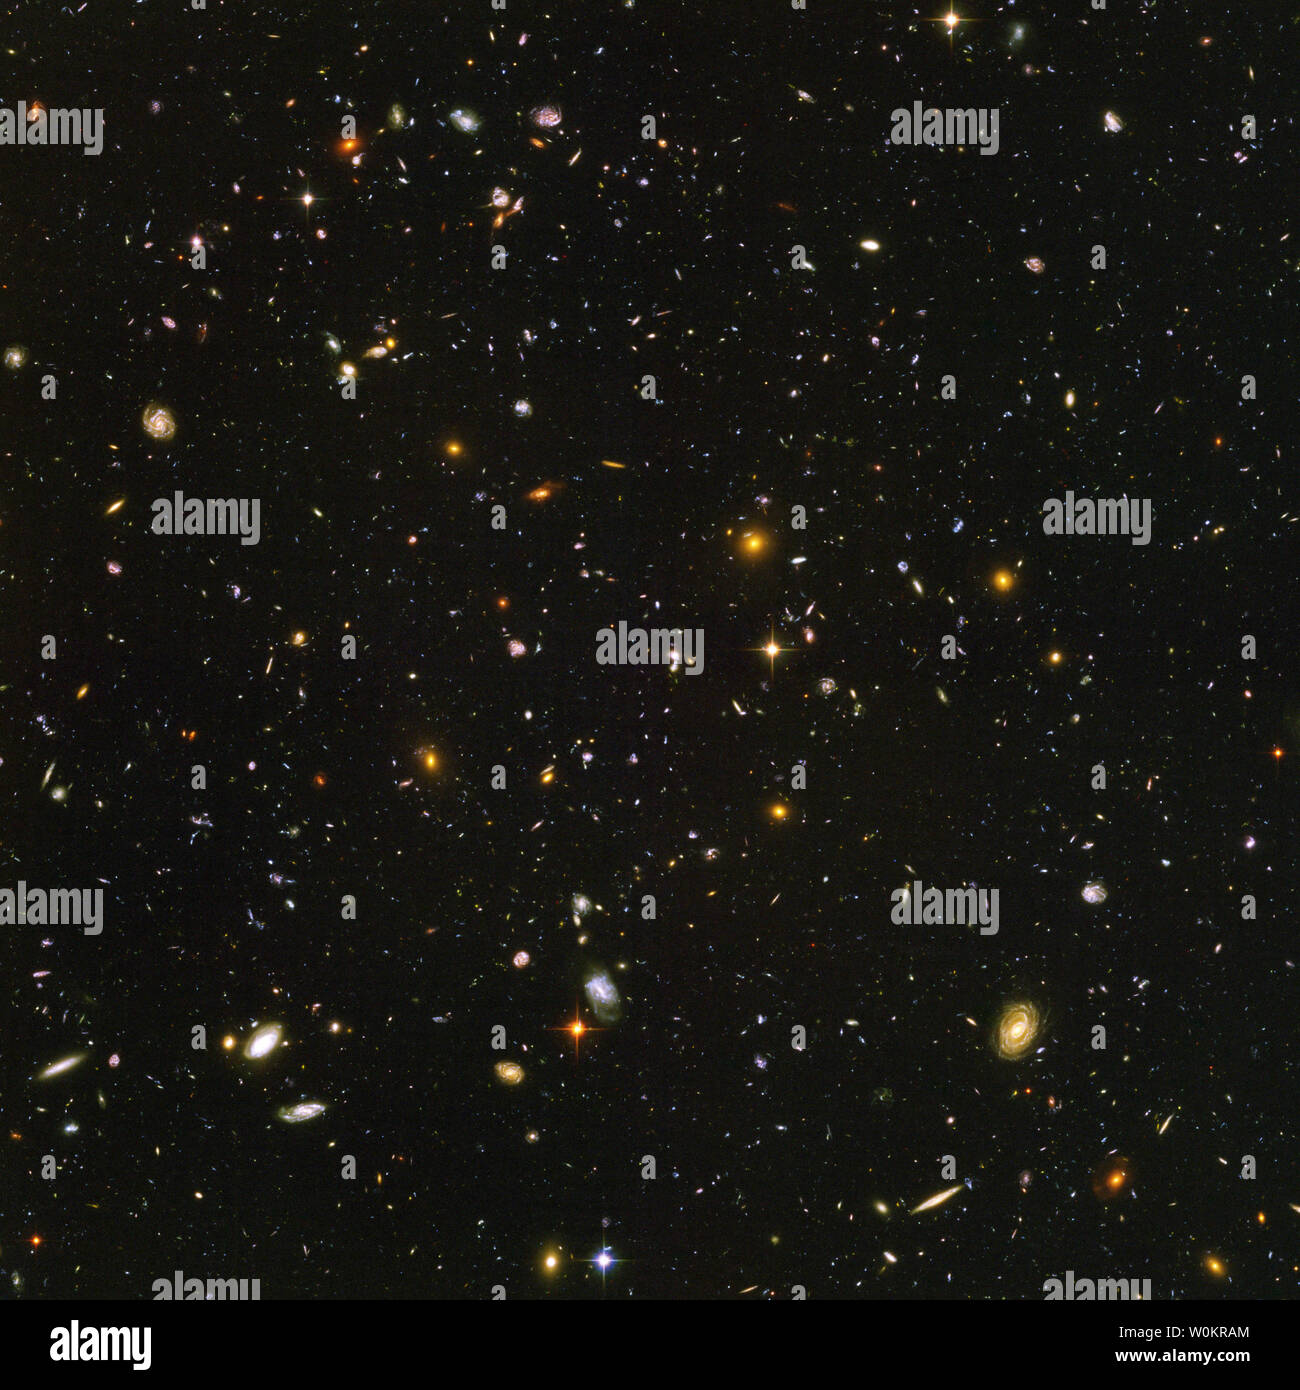 Galaxies, galaxies everywhere - as far as NASA's Hubble Space Telescope can see. This view of nearly 10,000 galaxies is the deepest visible-light image of the cosmos. Called the Hubble Ultra Deep Field, this galaxy-studded view represents a 'deep' core sample of the universe, cutting across billions of light-years. The snapshot includes galaxies of various ages, sizes, shapes, and colors. The smallest, reddest galaxies, about 100, may be among the most distant known, existing when the universe was just 800 million years old. The nearest galaxies - the larger, brighter, well-defined spirals and - Stock Image